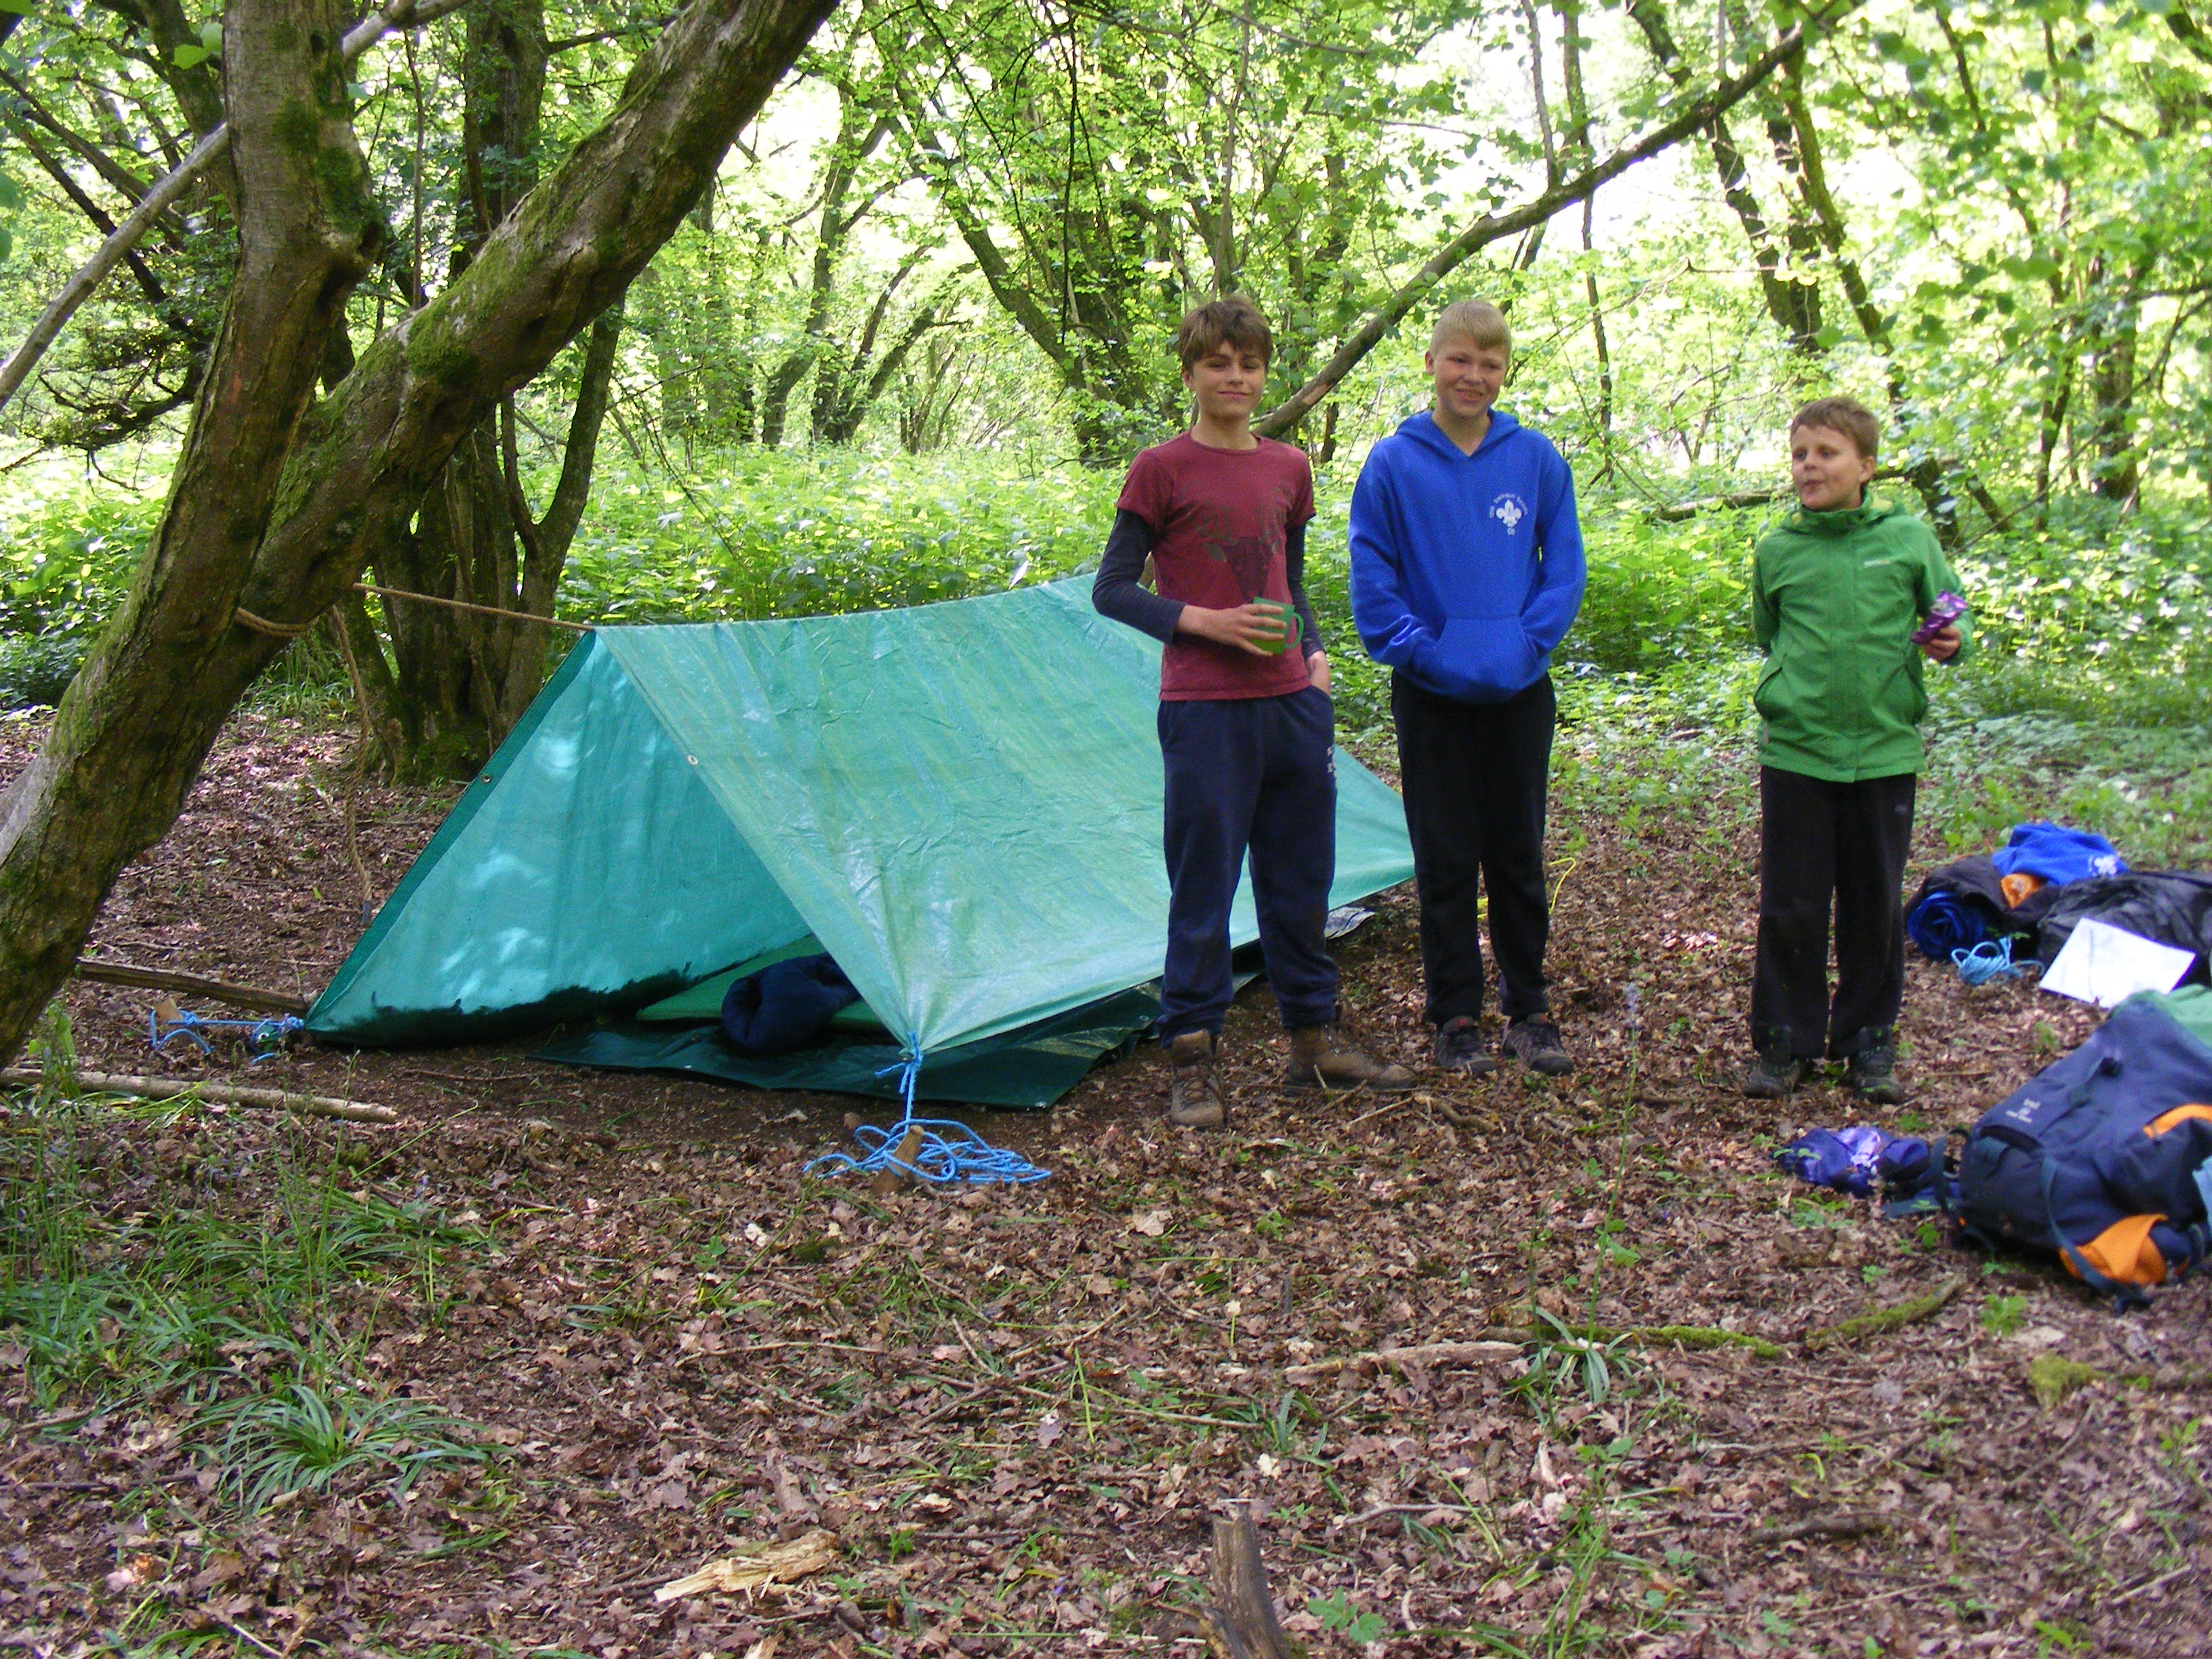 12th Swindon Scout Group